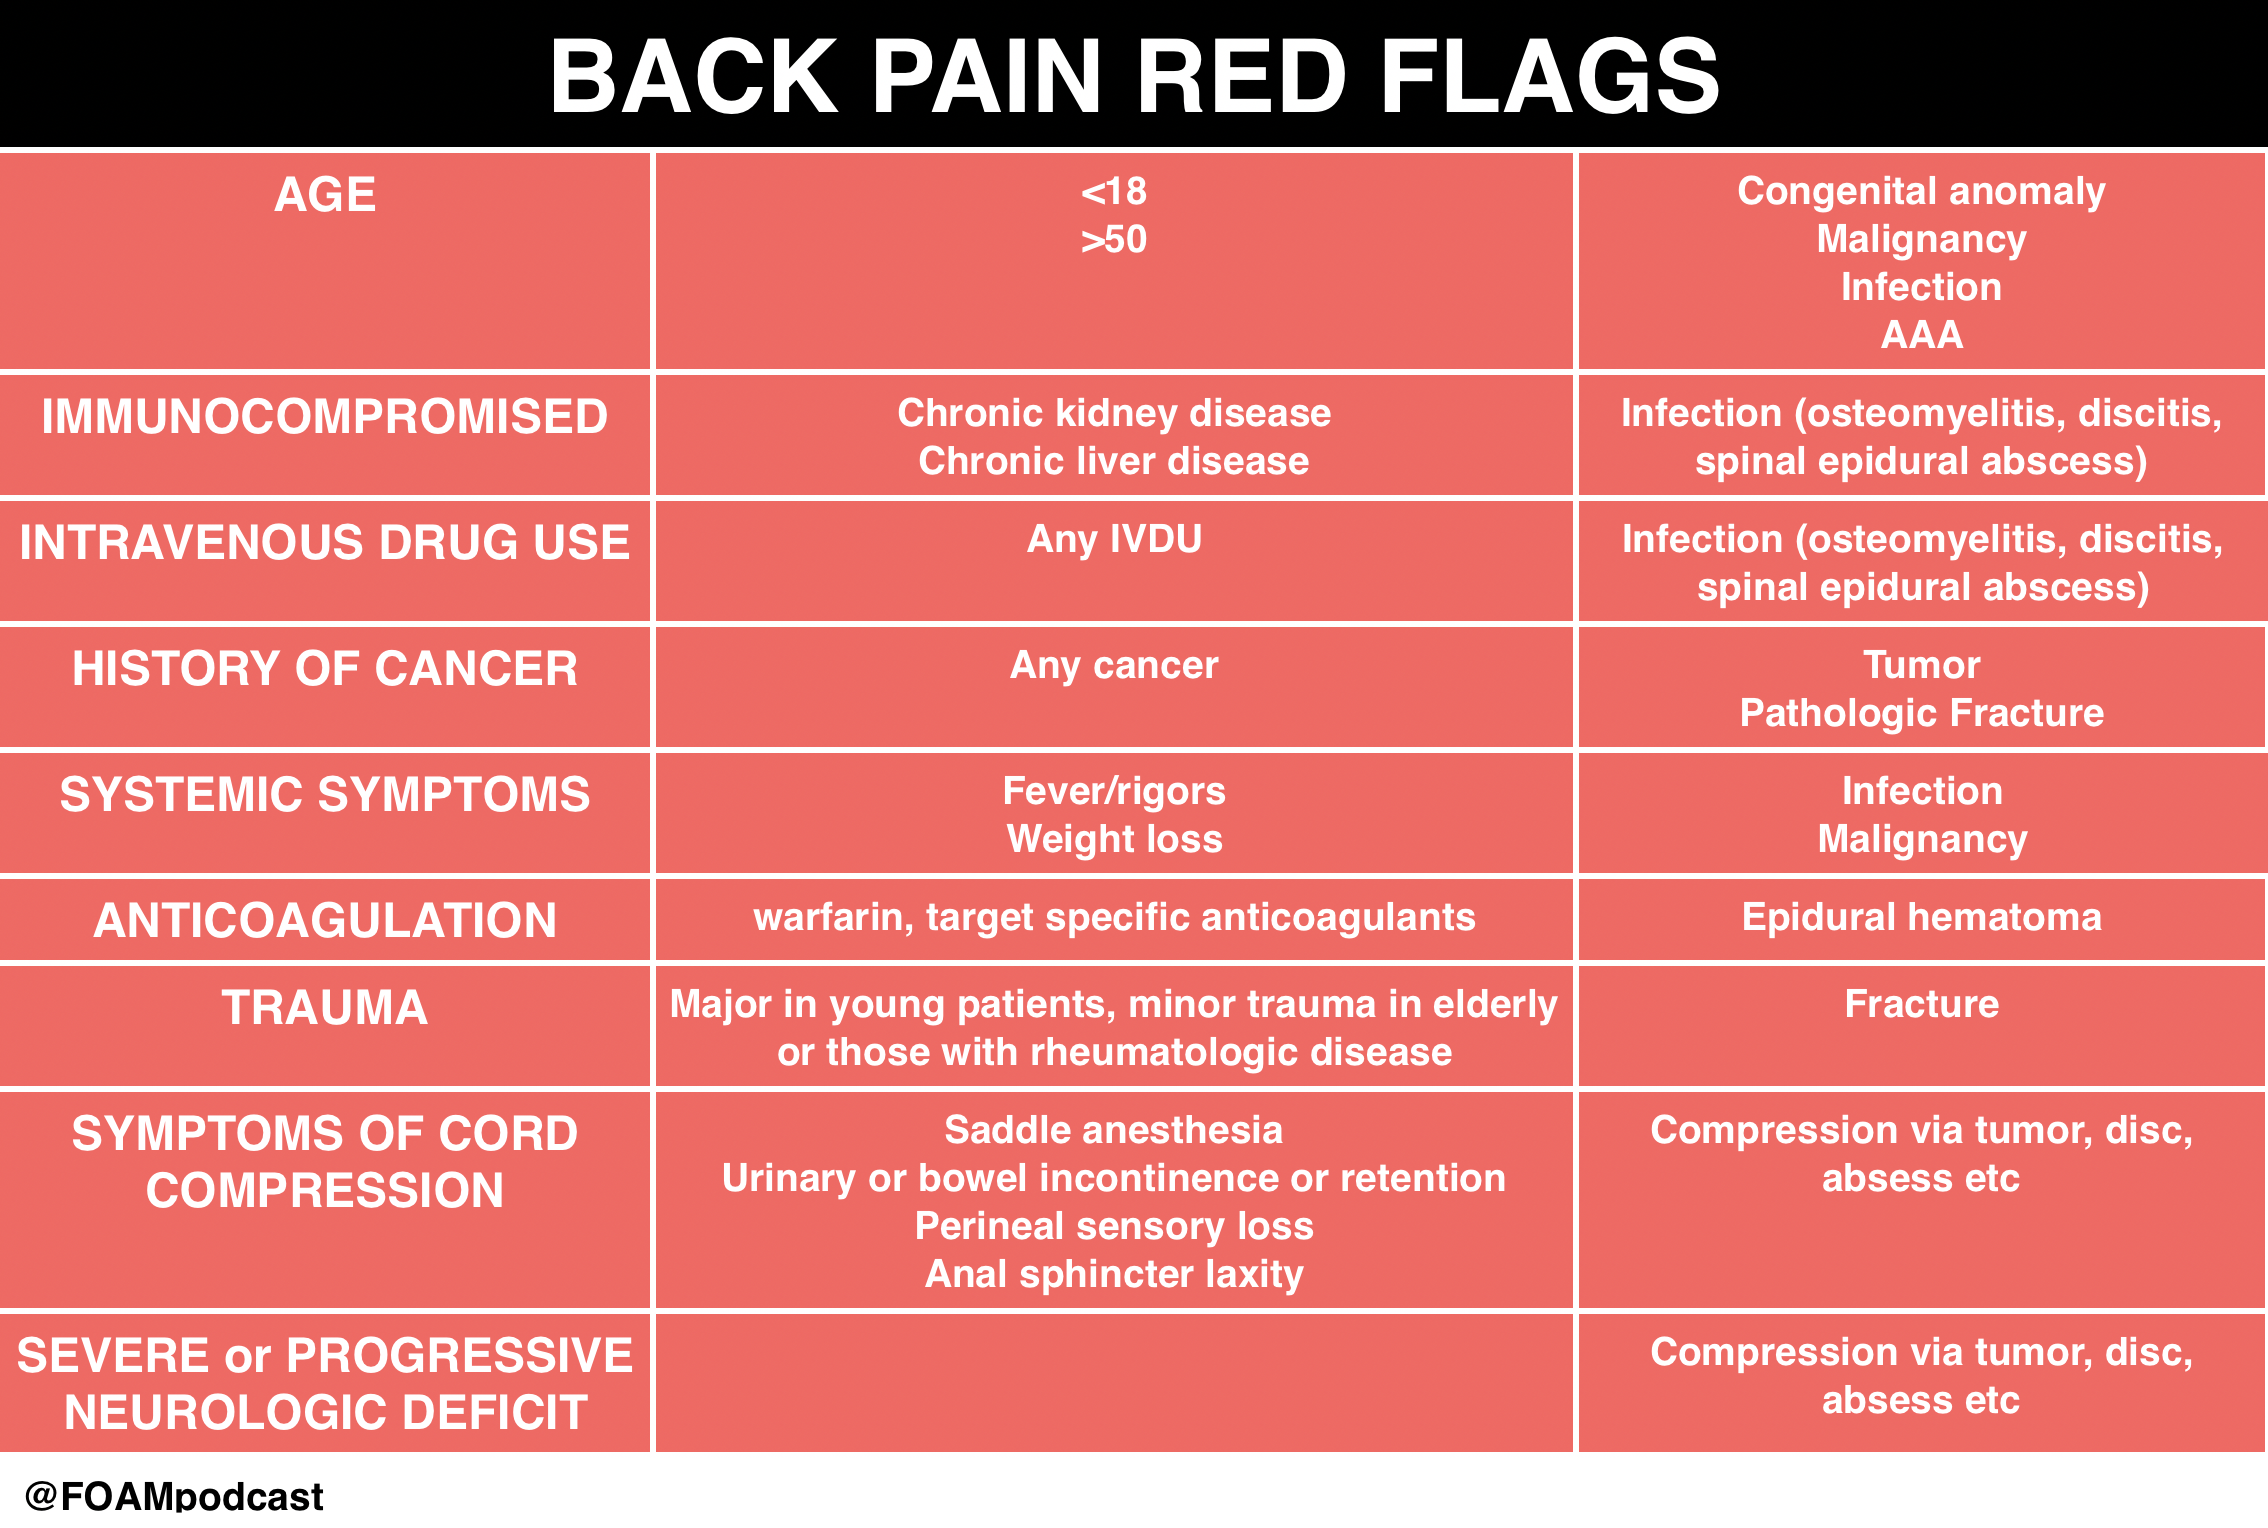 Back Pain Red Flags By Age Immunocompromised Intravenous Drug Use History Of